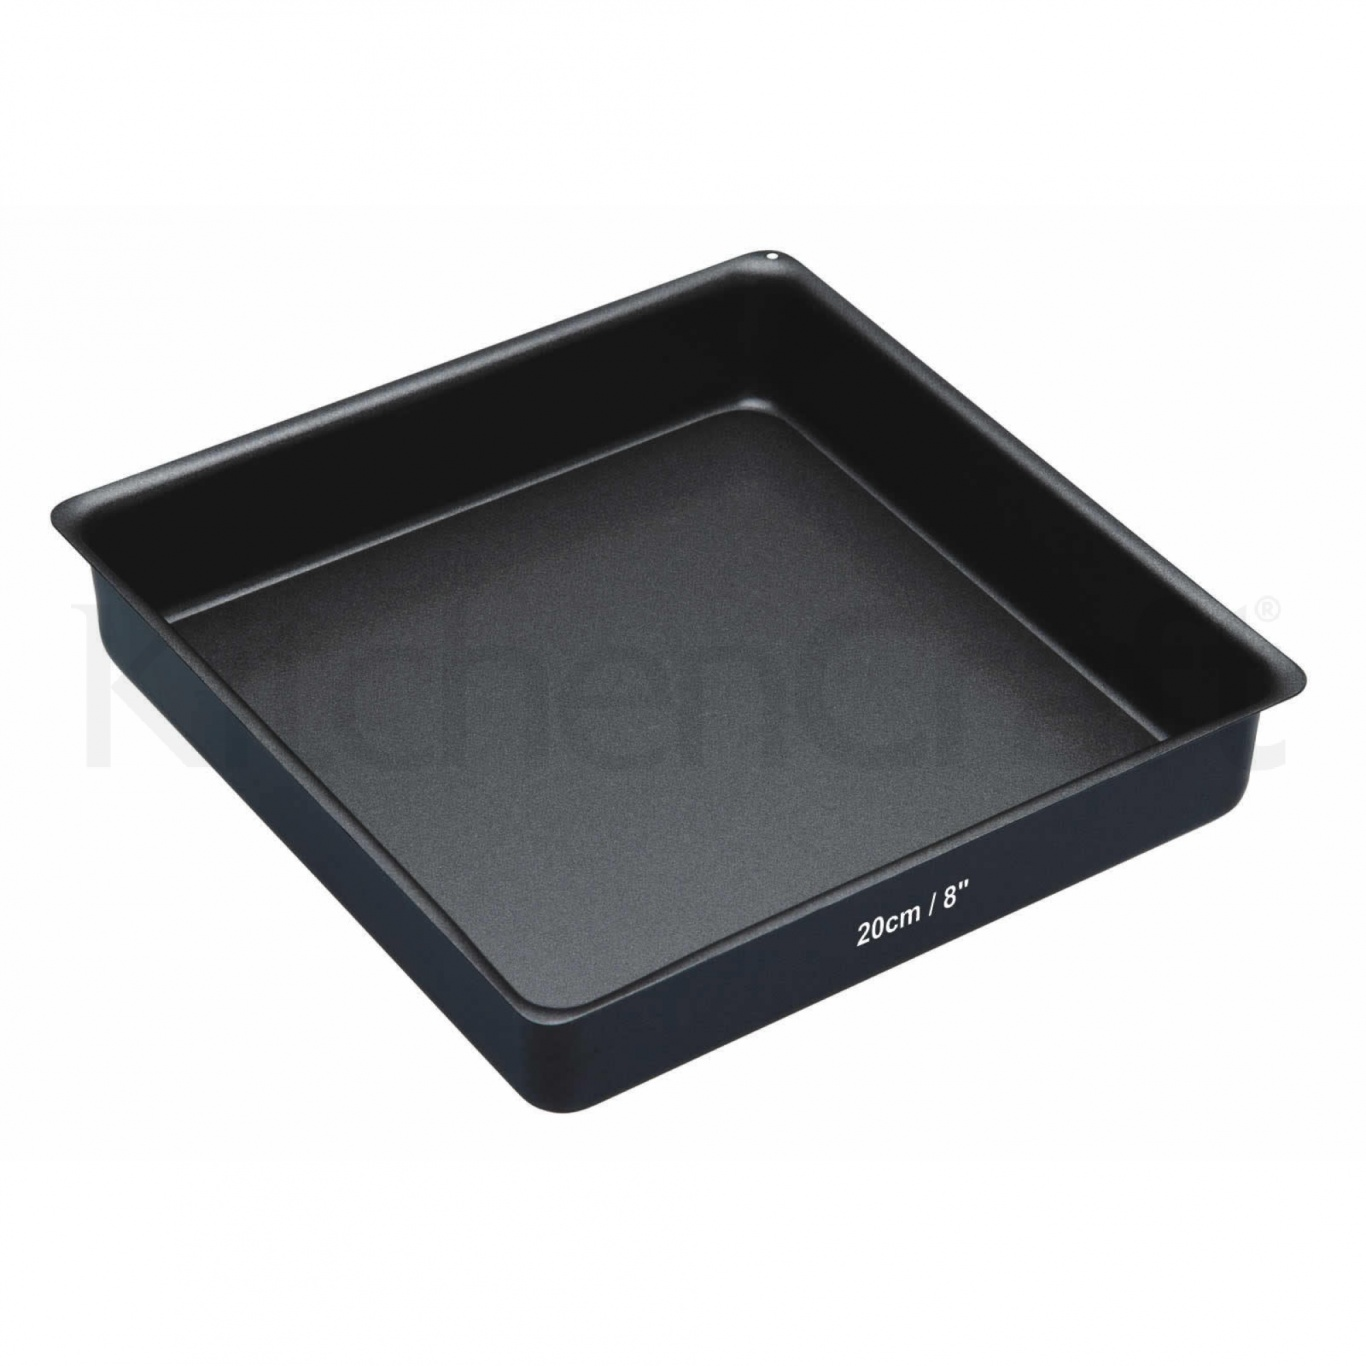 Image of Non Stick Square Sandwich Pan 20cm/8ins